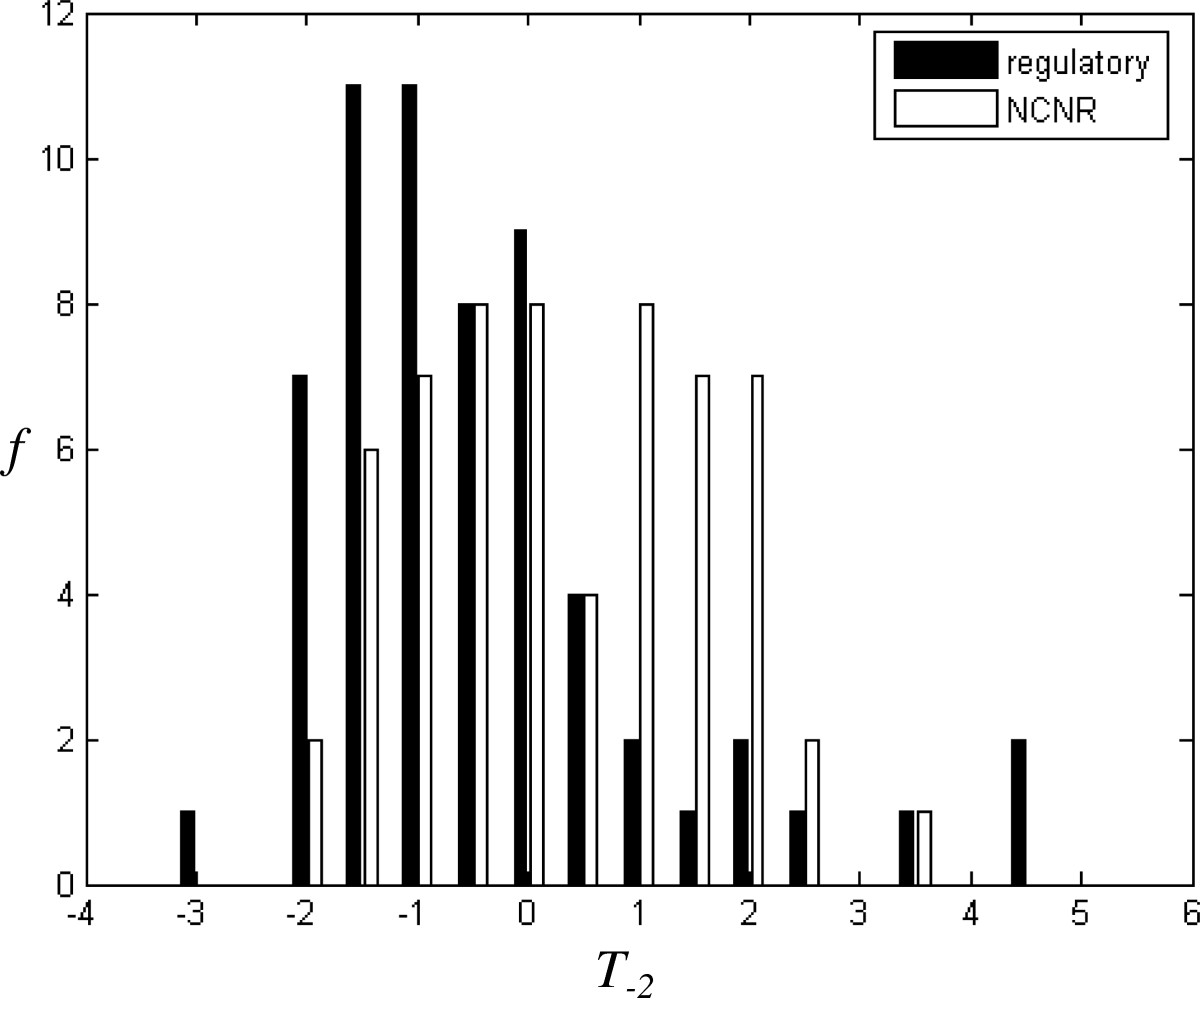 http://static-content.springer.com/image/art%3A10.1186%2F1742-4682-10-11/MediaObjects/12976_2012_Article_388_Fig7_HTML.jpg